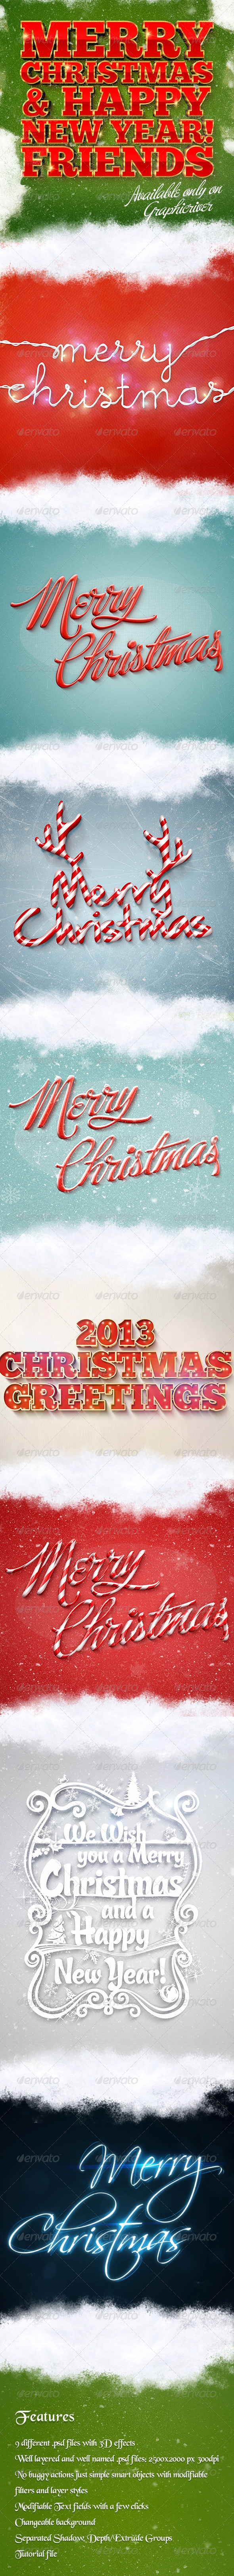 GraphicRiver 3D Text Effects Pack Christmas Edition 6032806